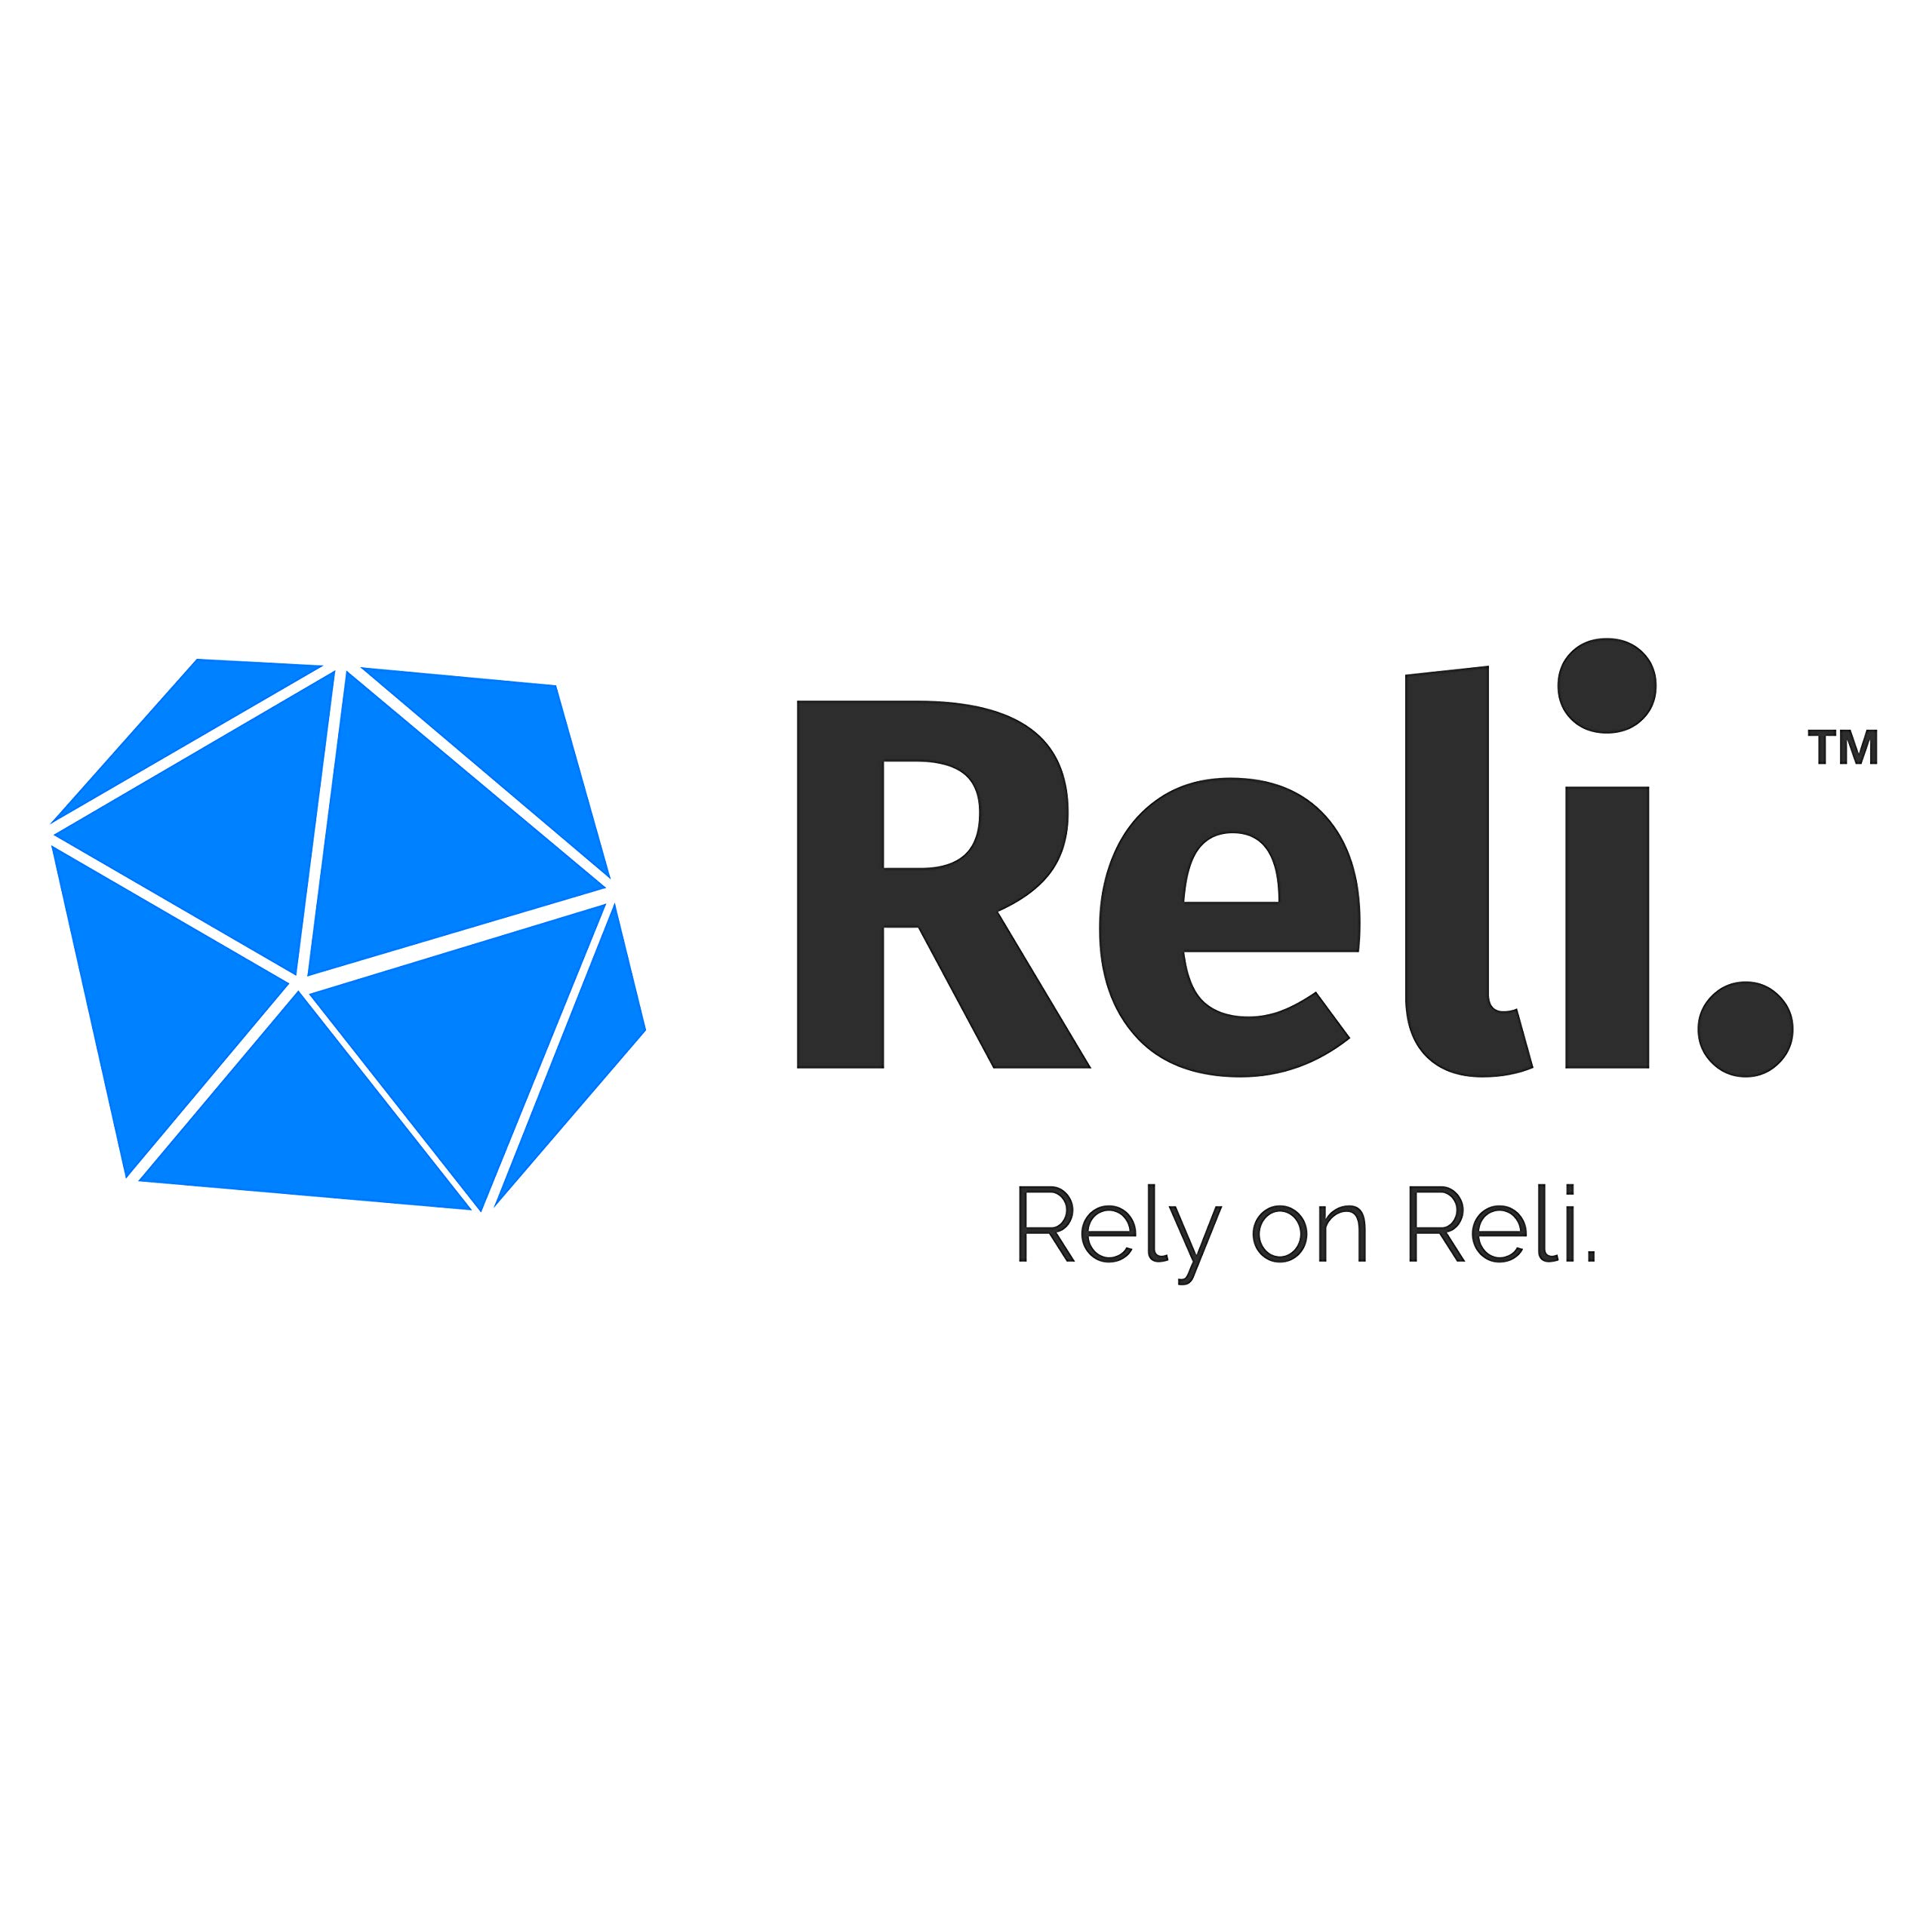 Reli. Premium Thickness Trash Bags, 40-45 Gallon (150 Count) (Black) - Easy Grab Rolls - Can Liners, Garbage Bags with 40 Gallon (40 Gal) to 45 Gallon (45 Gal) Capacity by Reli. (Image #6)